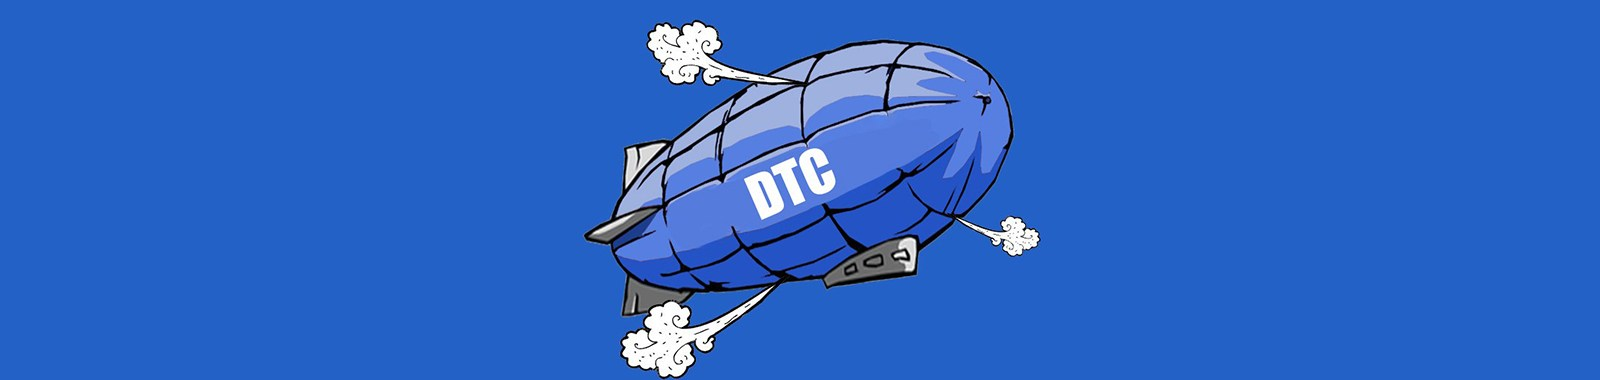 fb-blimp-DTC-eye